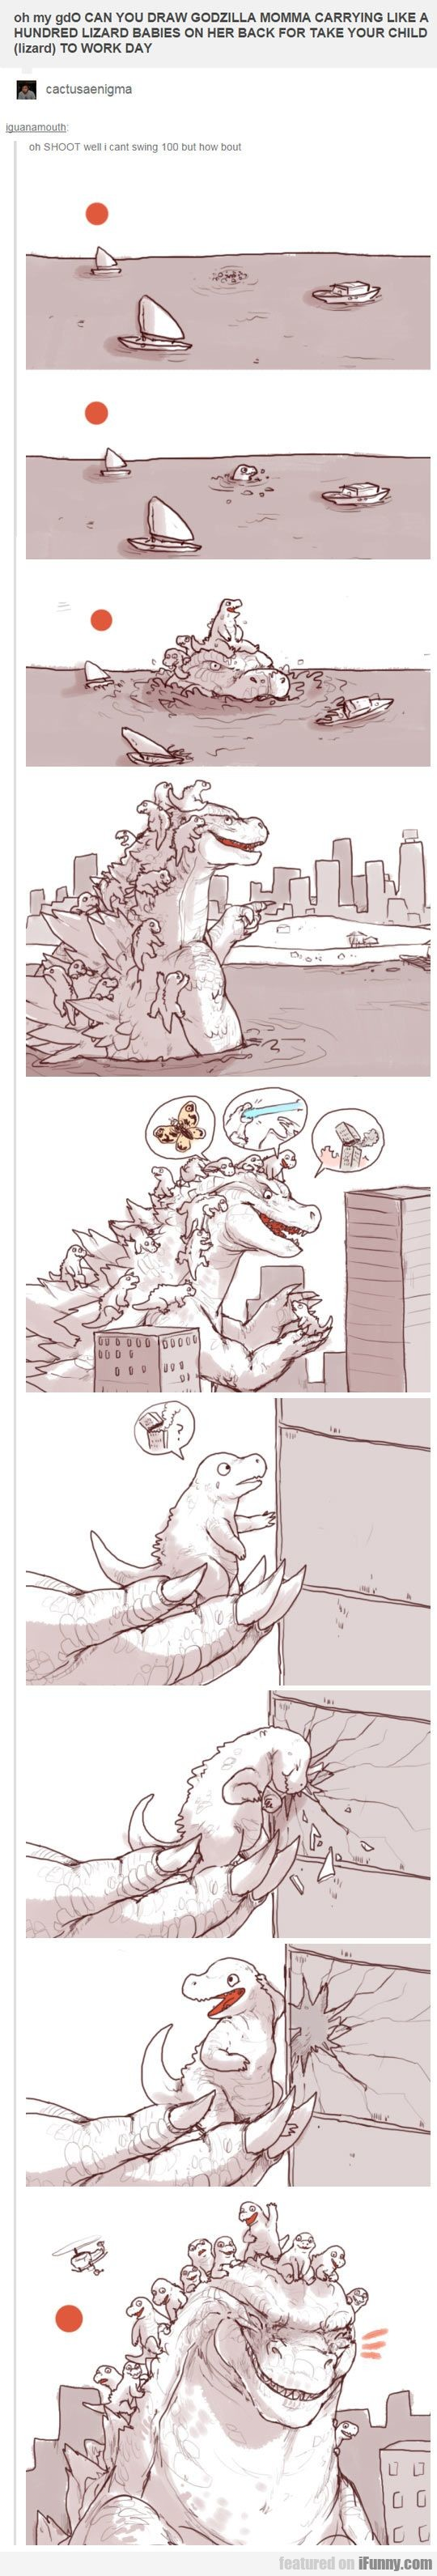 Can You Draw Godzilla Momma